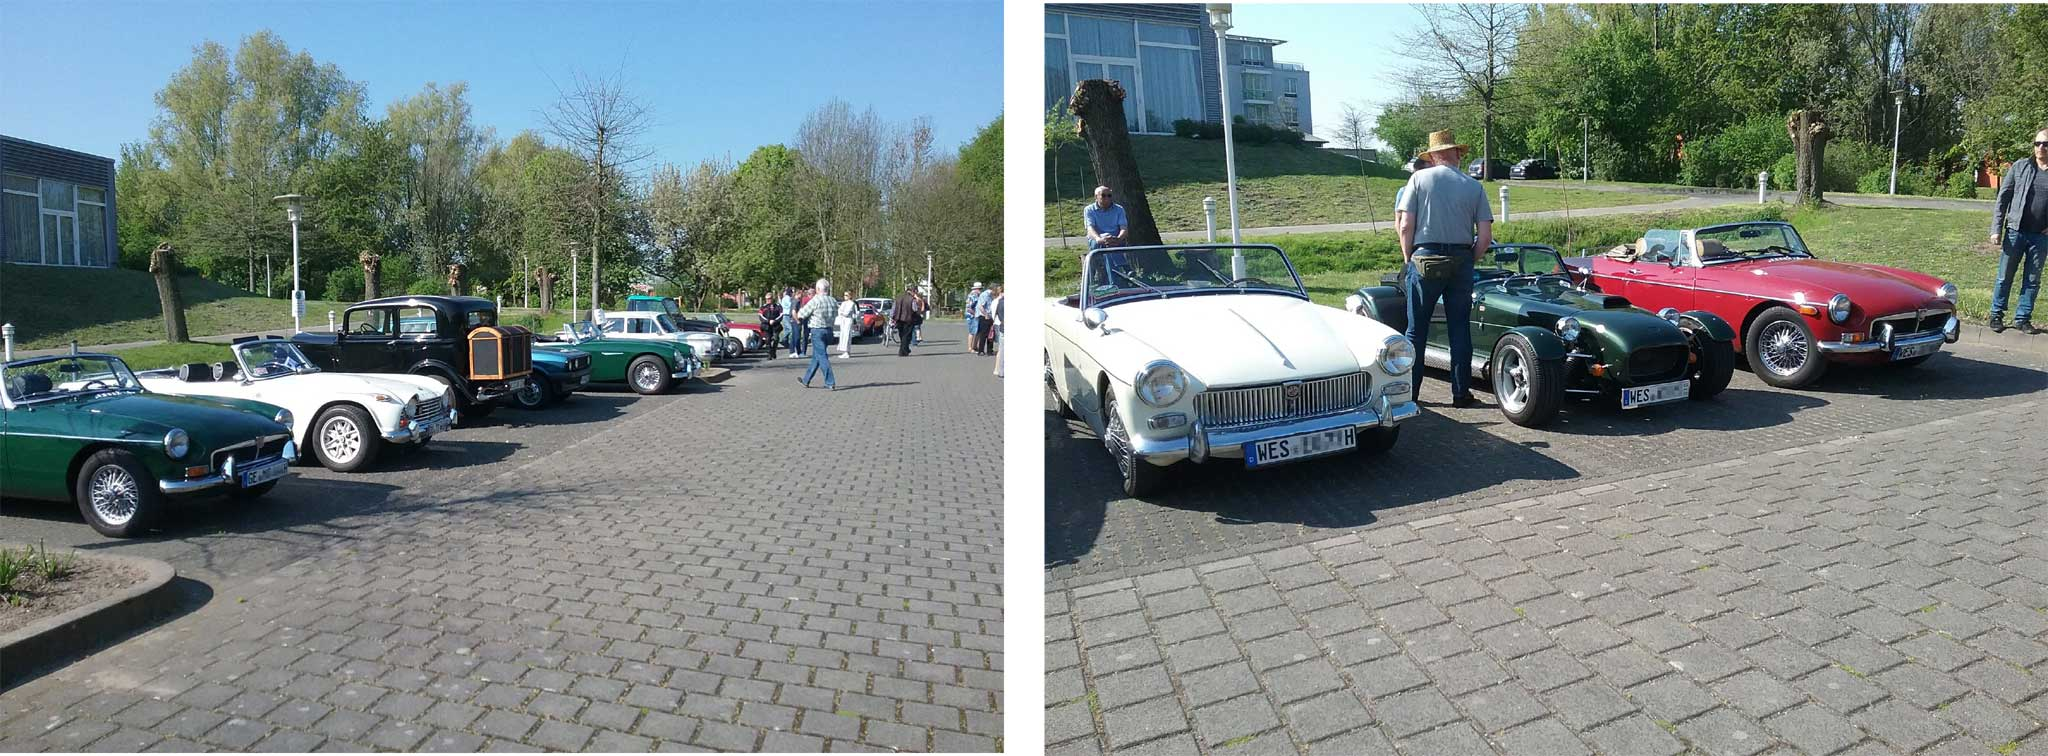 Youngtimer Events, Englische Roadster